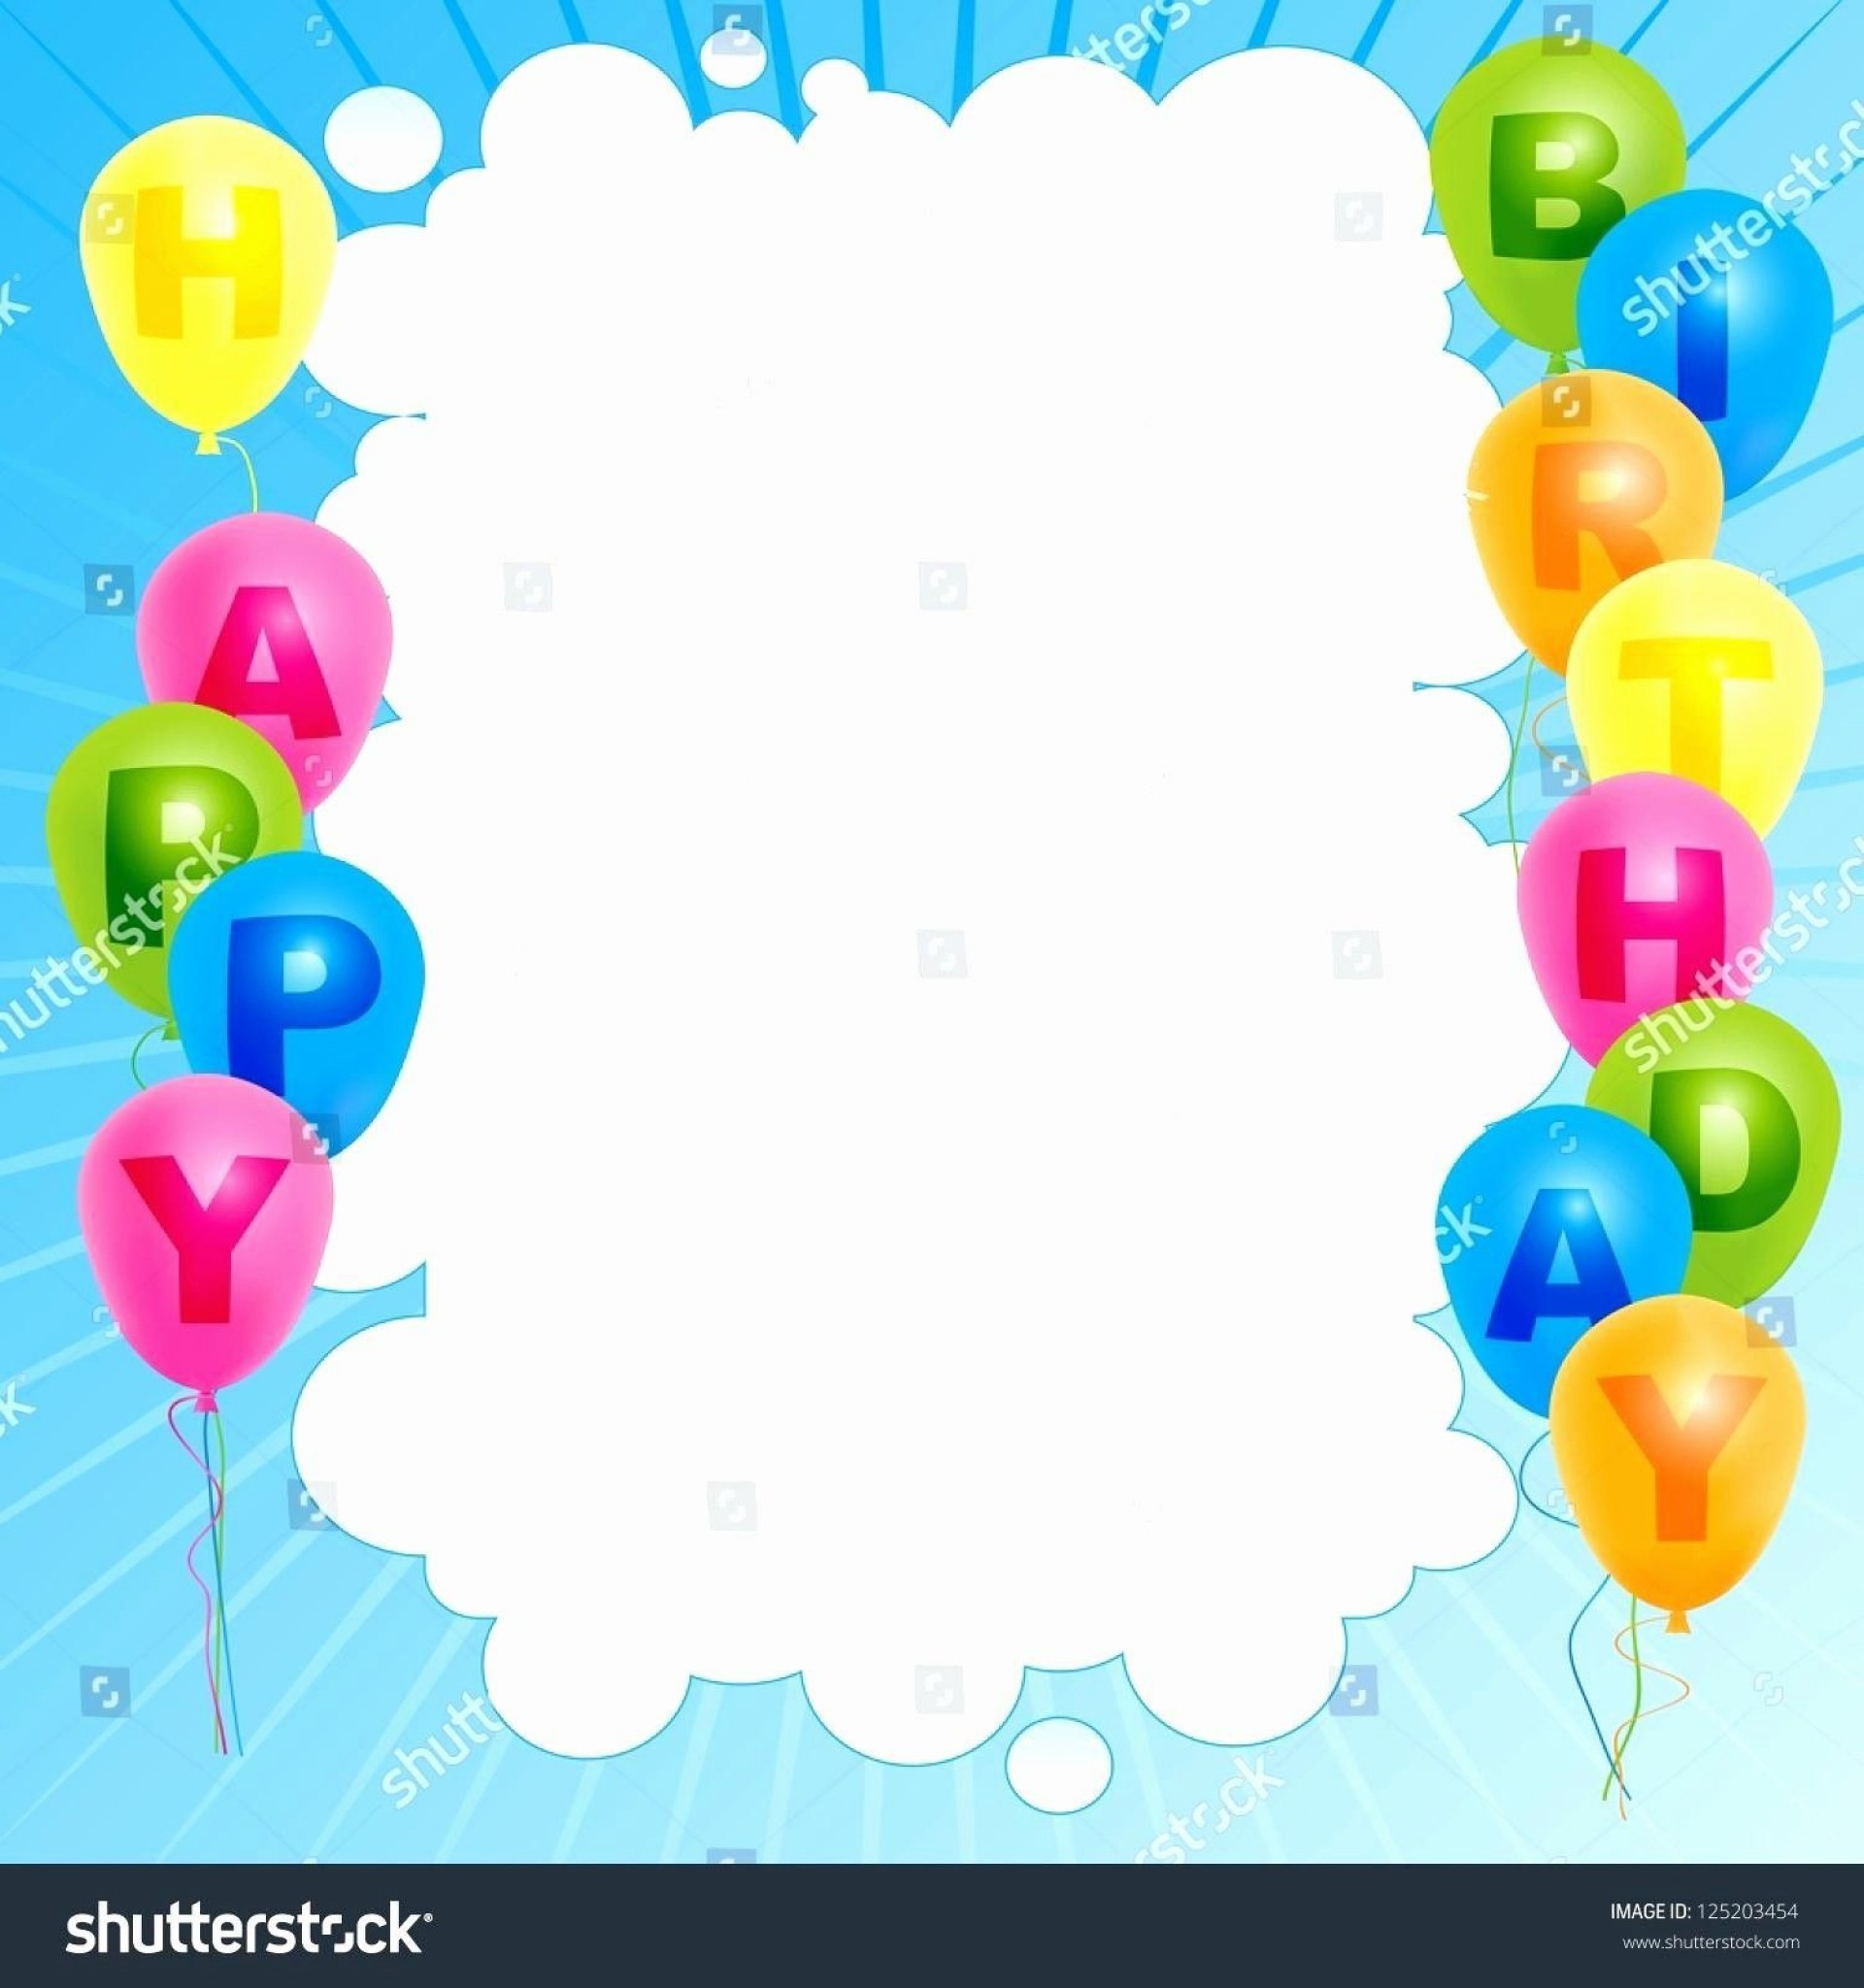 006 Formidable Happy Birthday Card Template For Word High Definition 1920